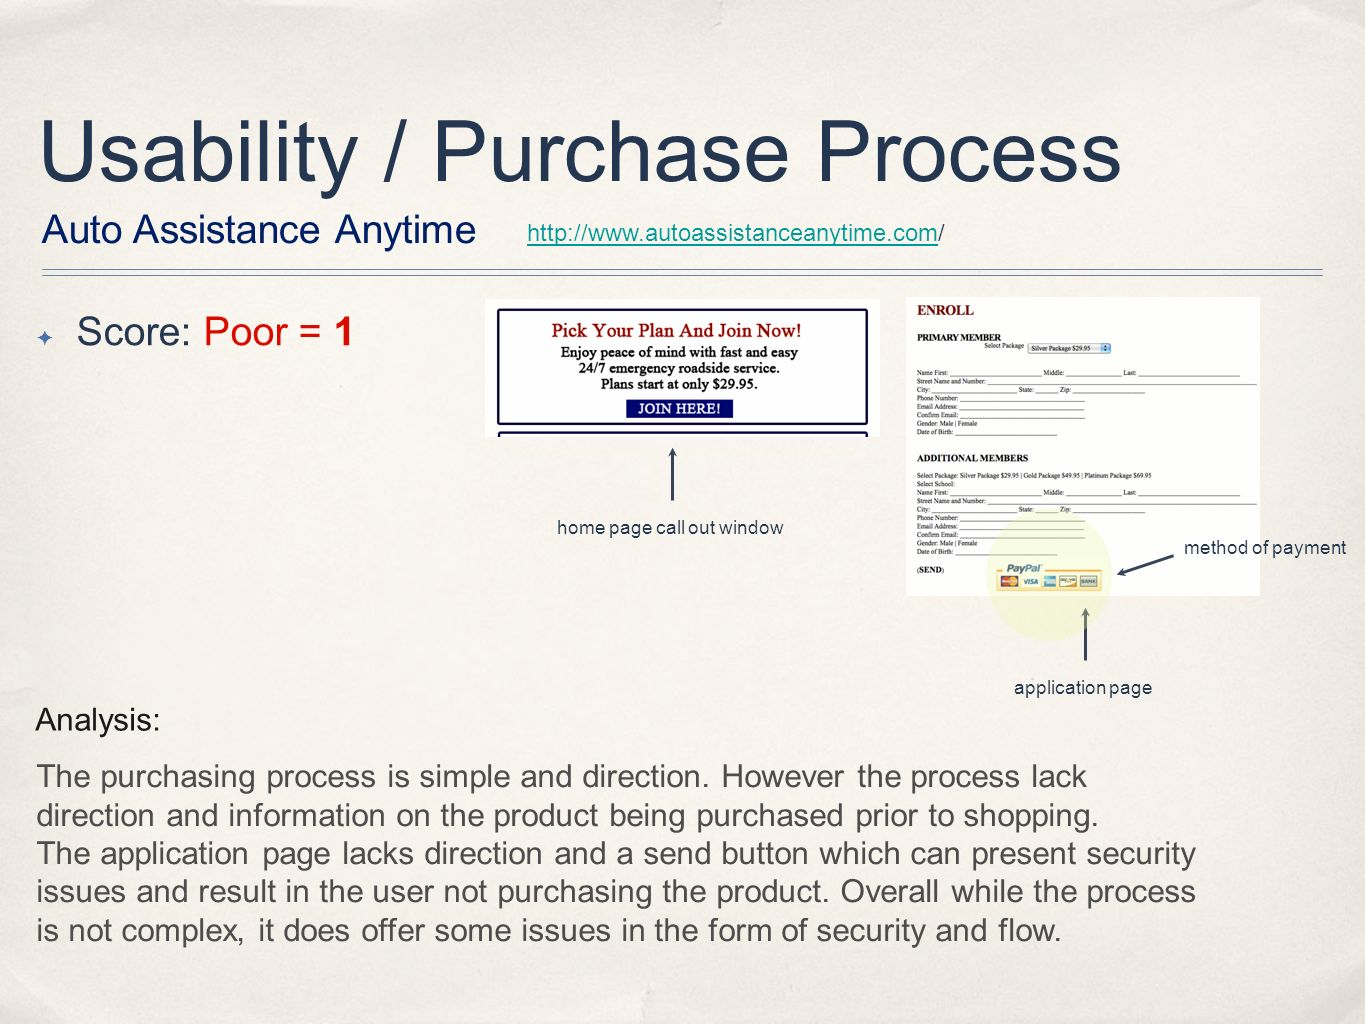 Usability / Purchase Process Analysis: The purchasing process is simple and direction.